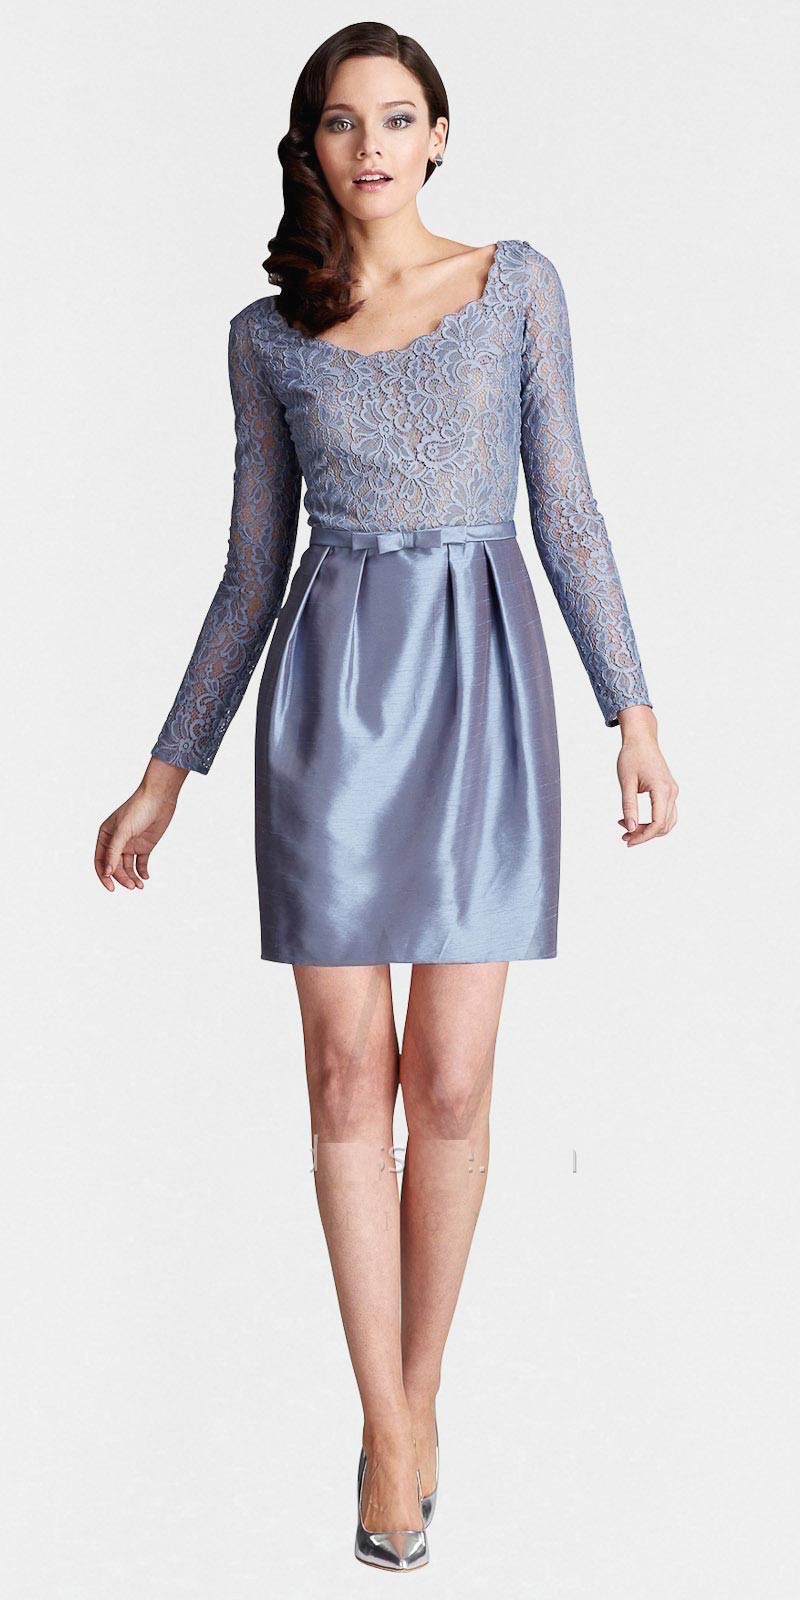 long_sleeved_lace_illusion_taffeta_skirt_cocktail_dresses_by_lm_collection_1